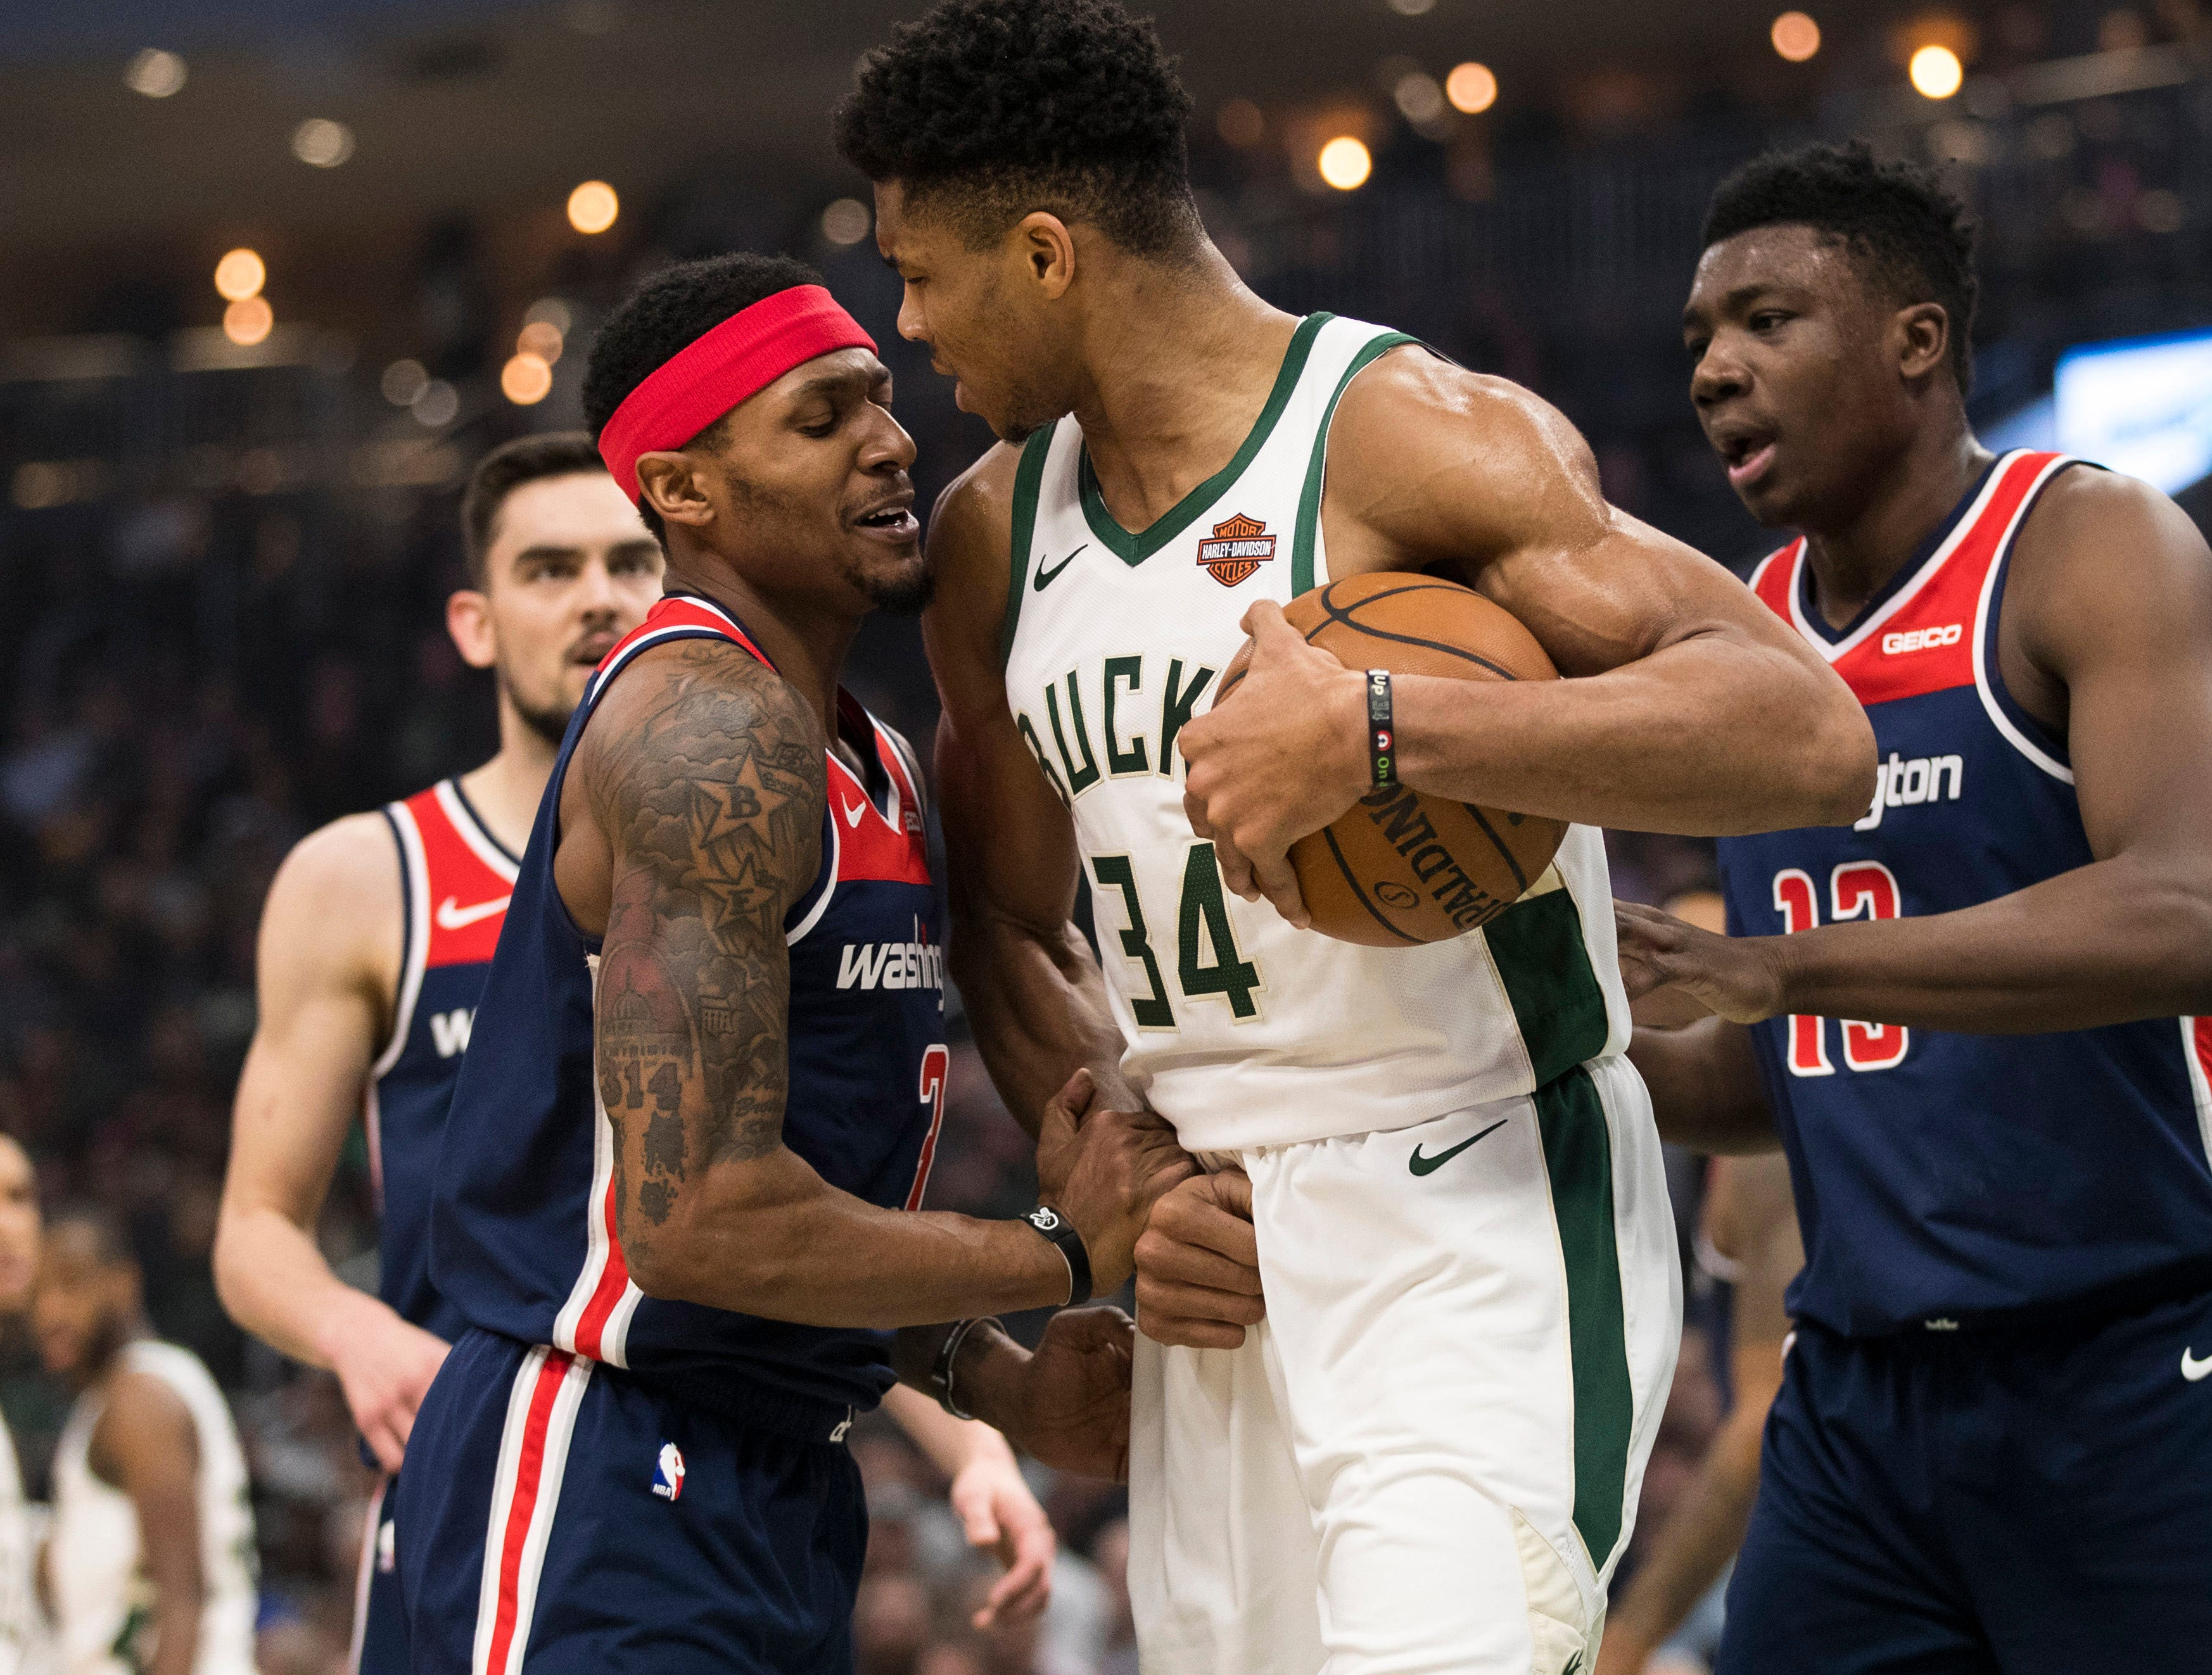 Feb. 6: Washington Wizards guard Bradley Beal (3) argues with Milwaukee Bucks forward Giannis Antetokounmpo (34) following a play during the first quarter at Fiserv Forum.